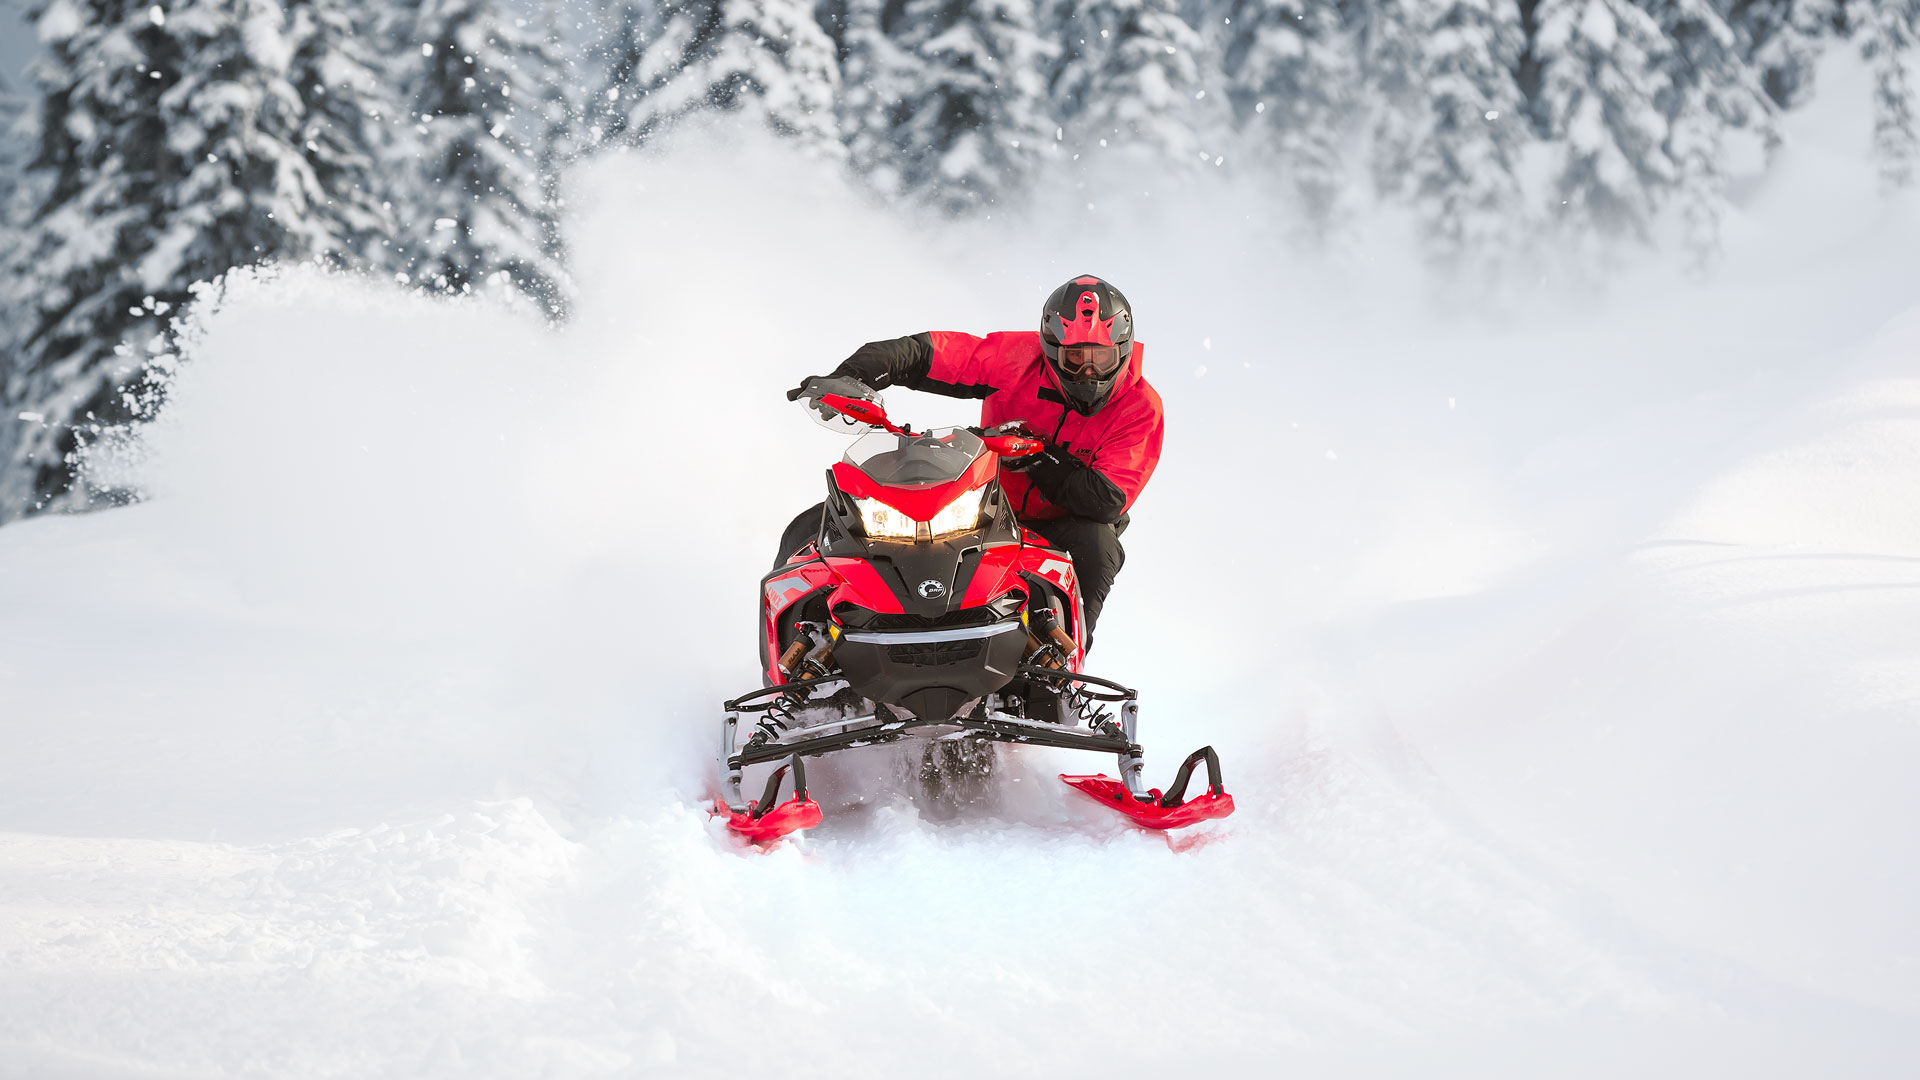 Lynx Rave snowmobile riding on trail